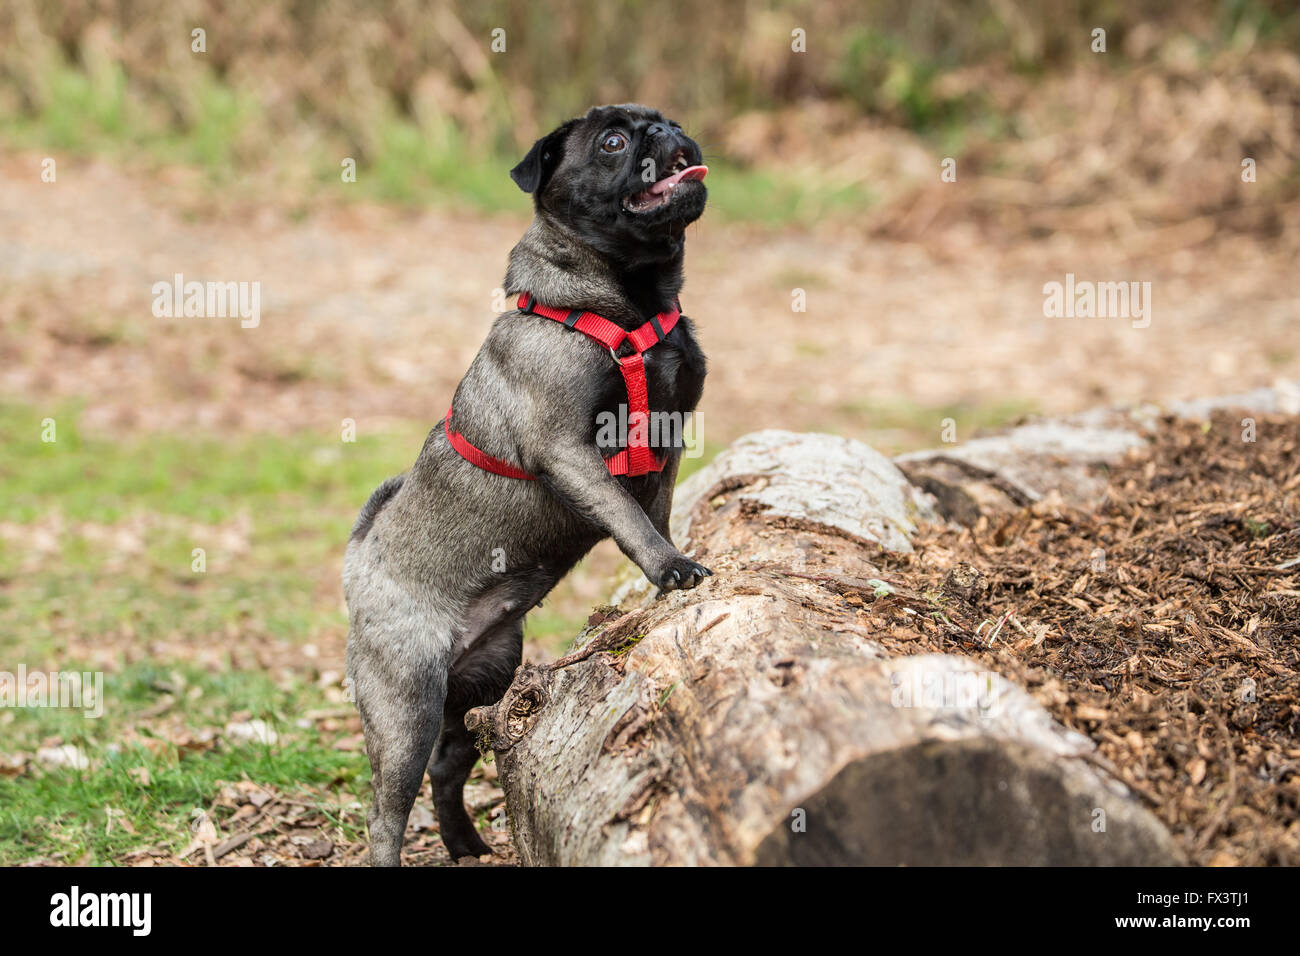 Olive, the Pug, with front paws resting on logs surrounding a raised garden in Issaquah, Washington, USA Stock Photo